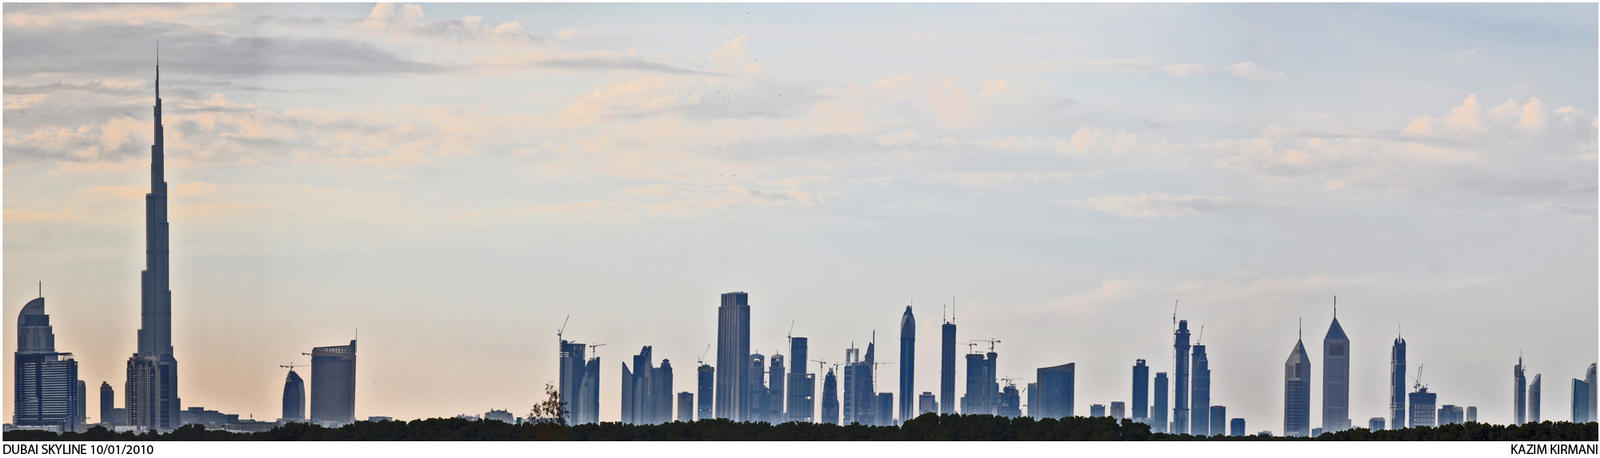 Dubai Skyline by kazimkirmani